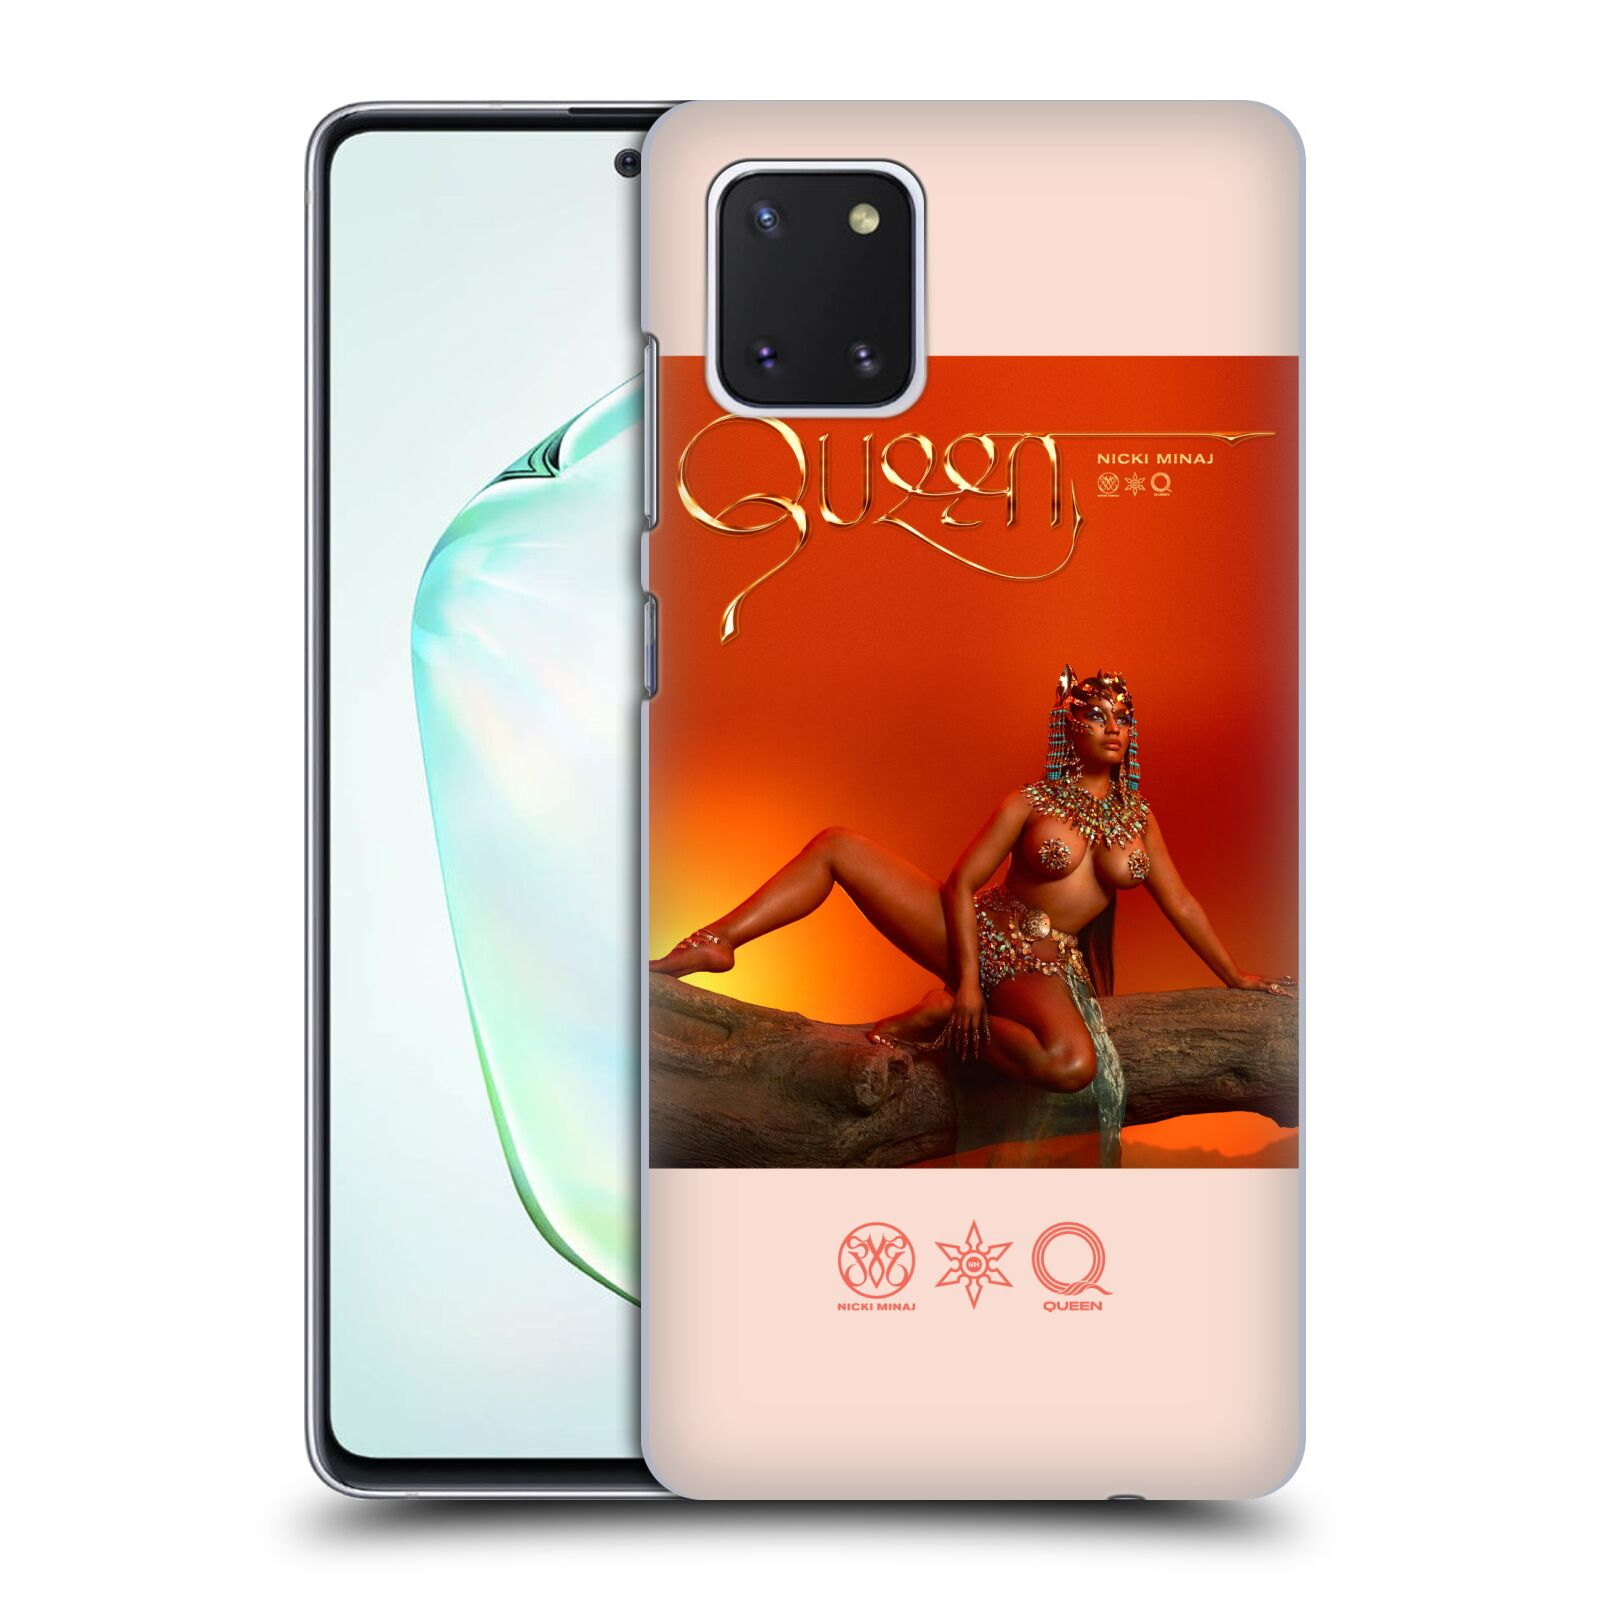 Official Nicki Minaj Album Queen Case for Samsung Galaxy Note10 Lite